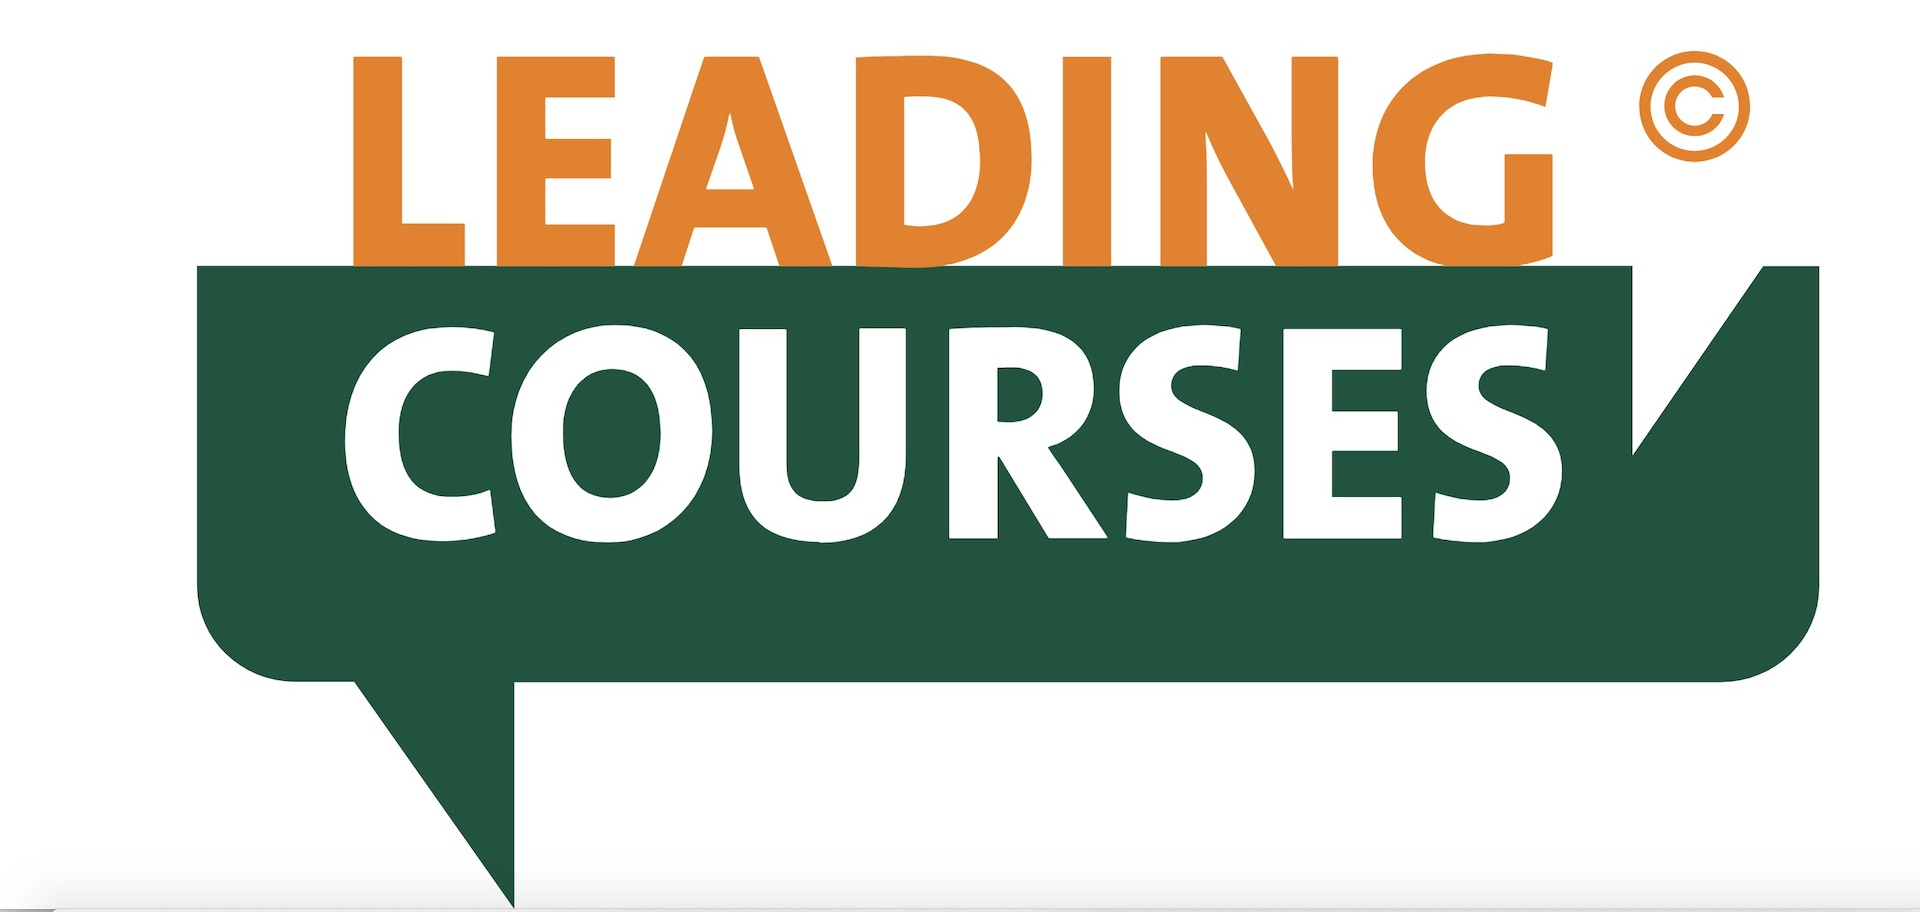 Leadingcourses.com connects to Albatros